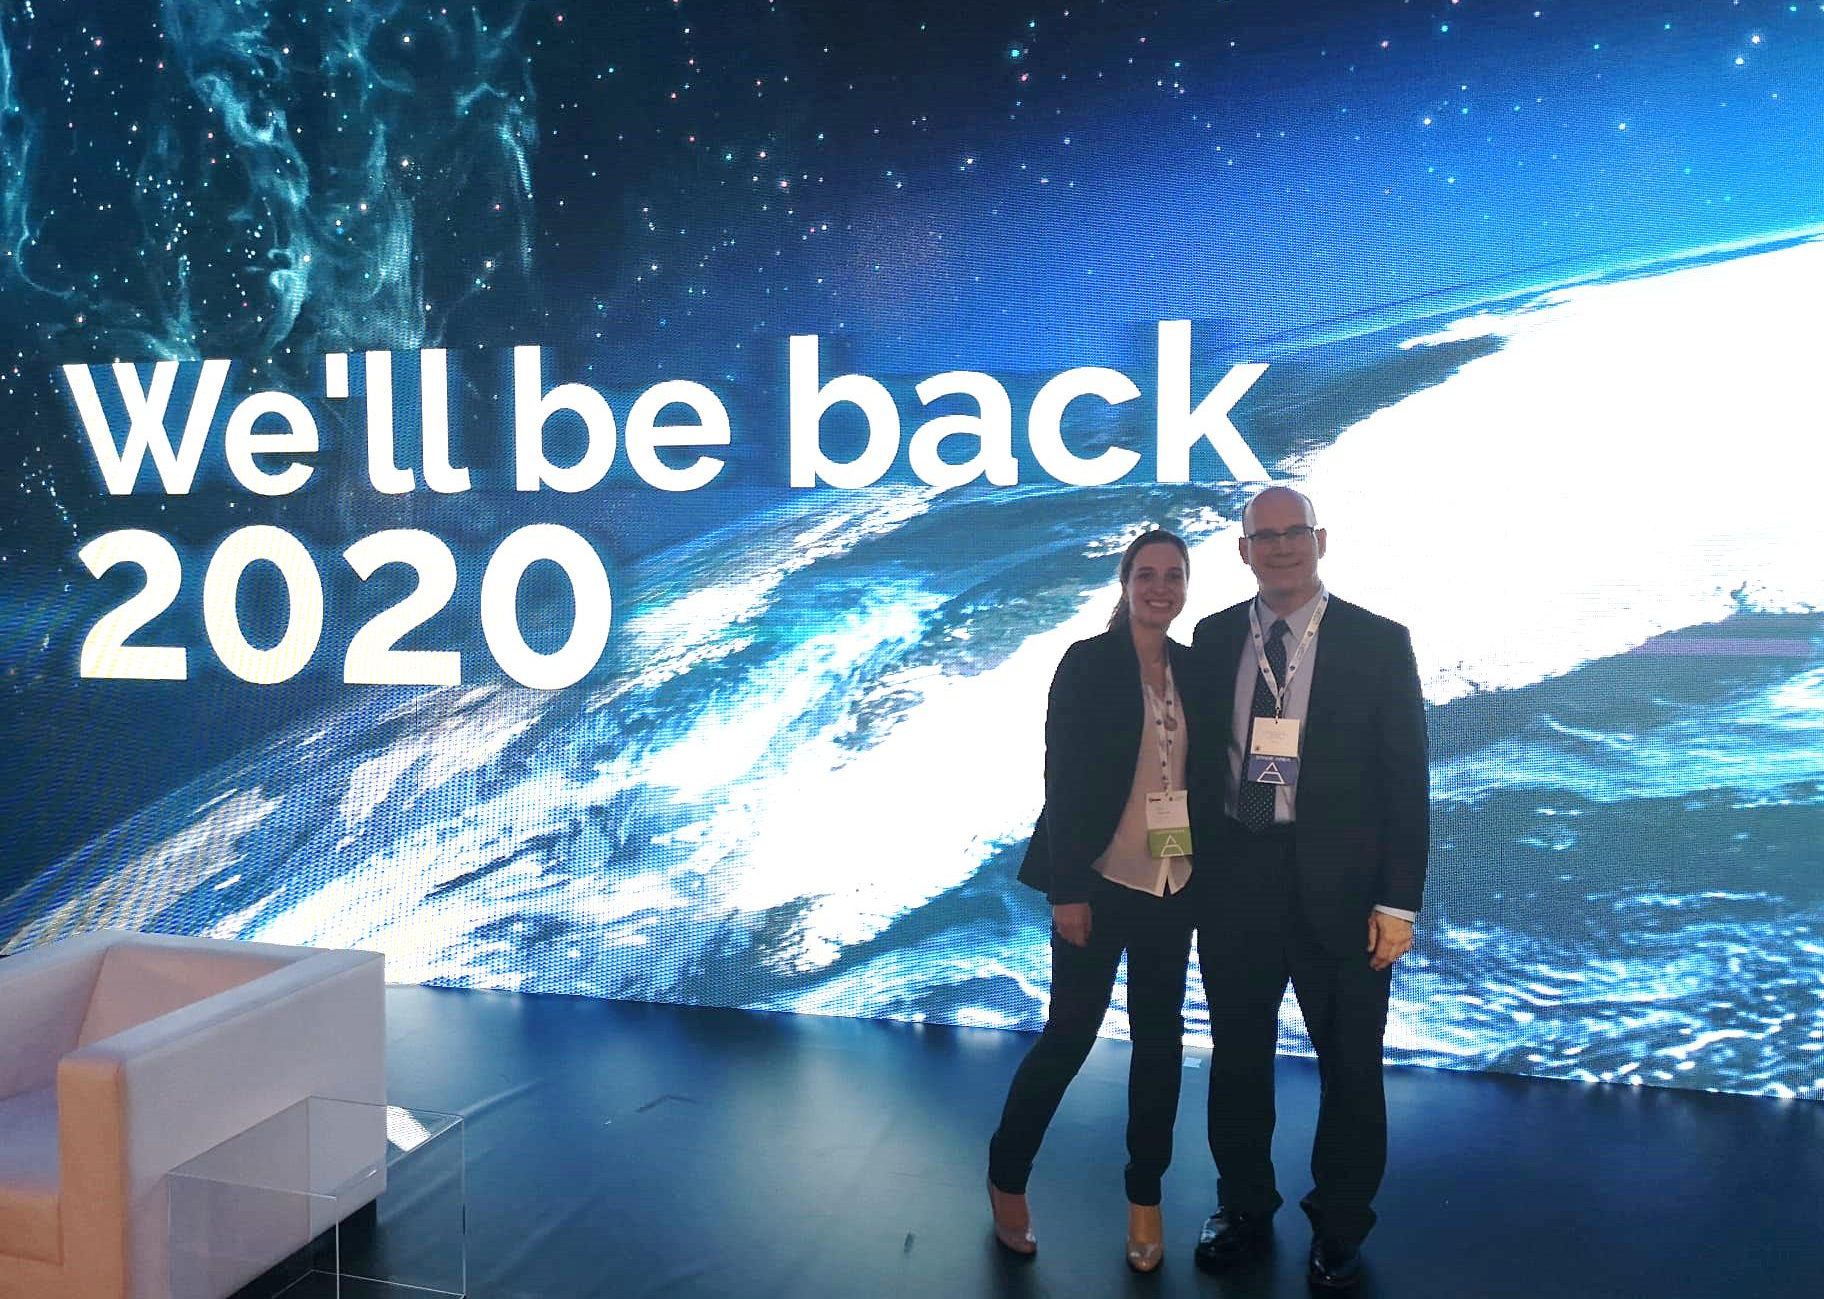 We'll be back 2020